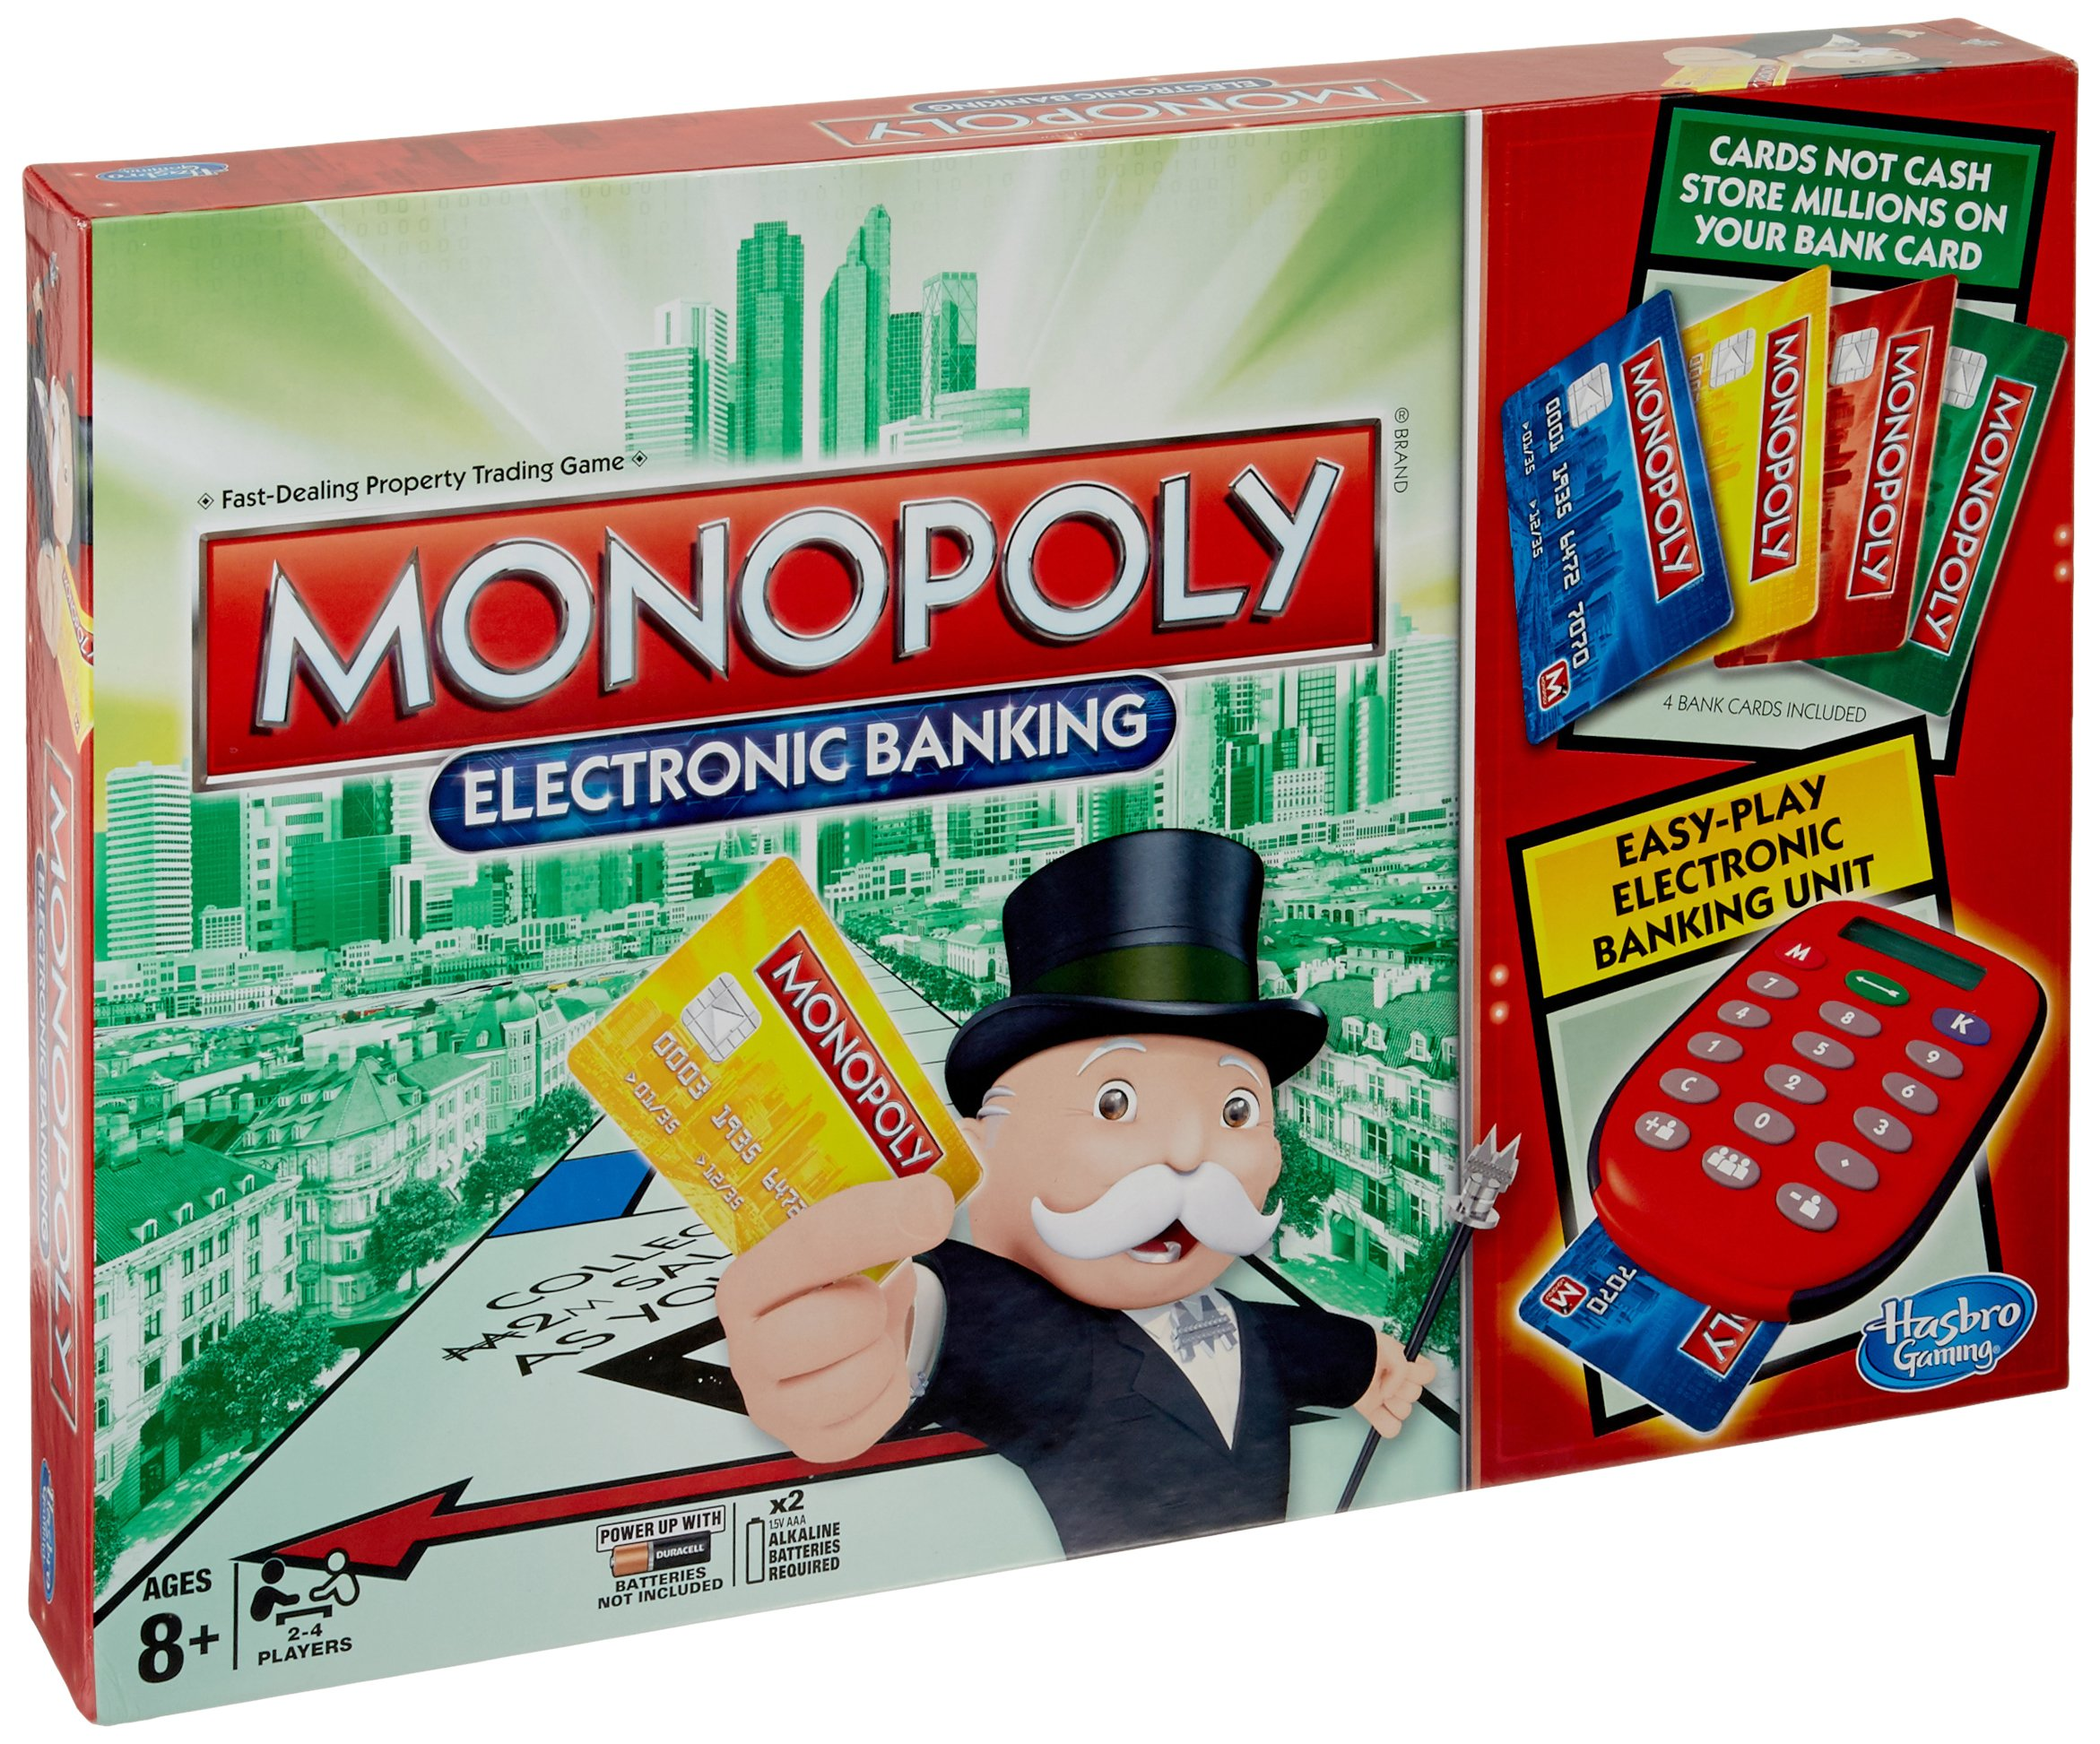 Monopoly Electronic Banking Game by Hasbro